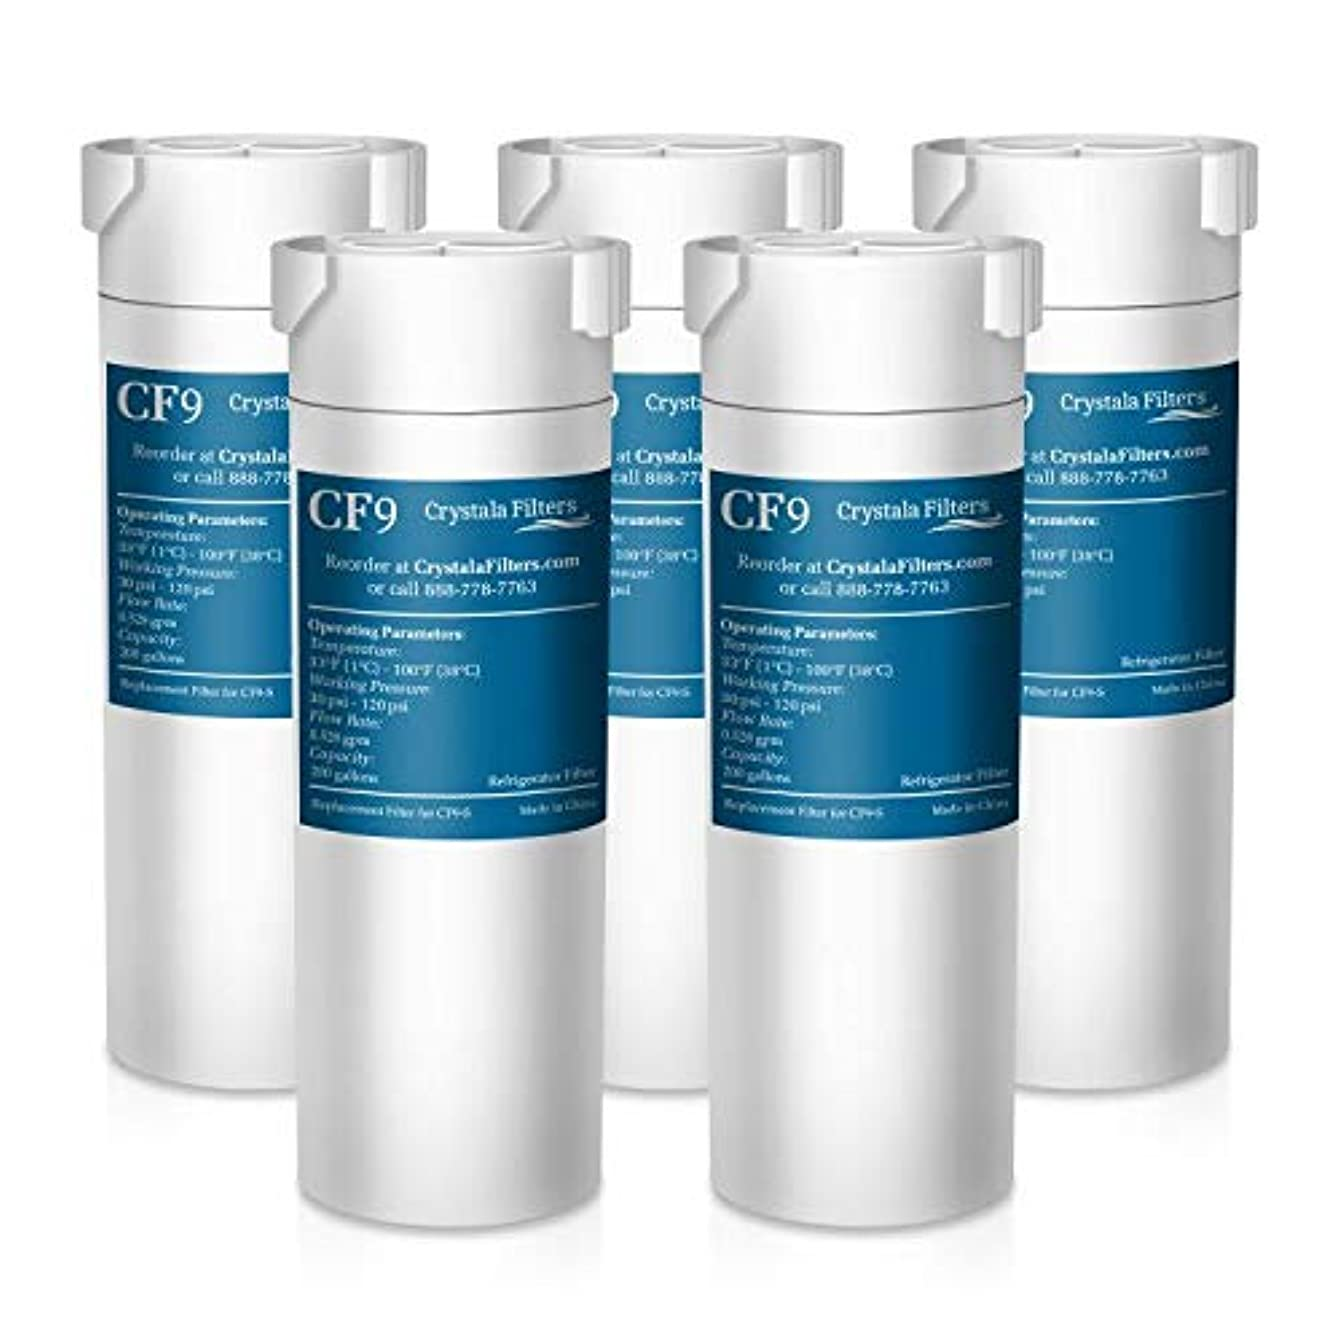 Crystala Filters Compatible with GE XWF Water Filter, Replacement for GE SmartWater Refrigerator Water Filter, (5 PACK)